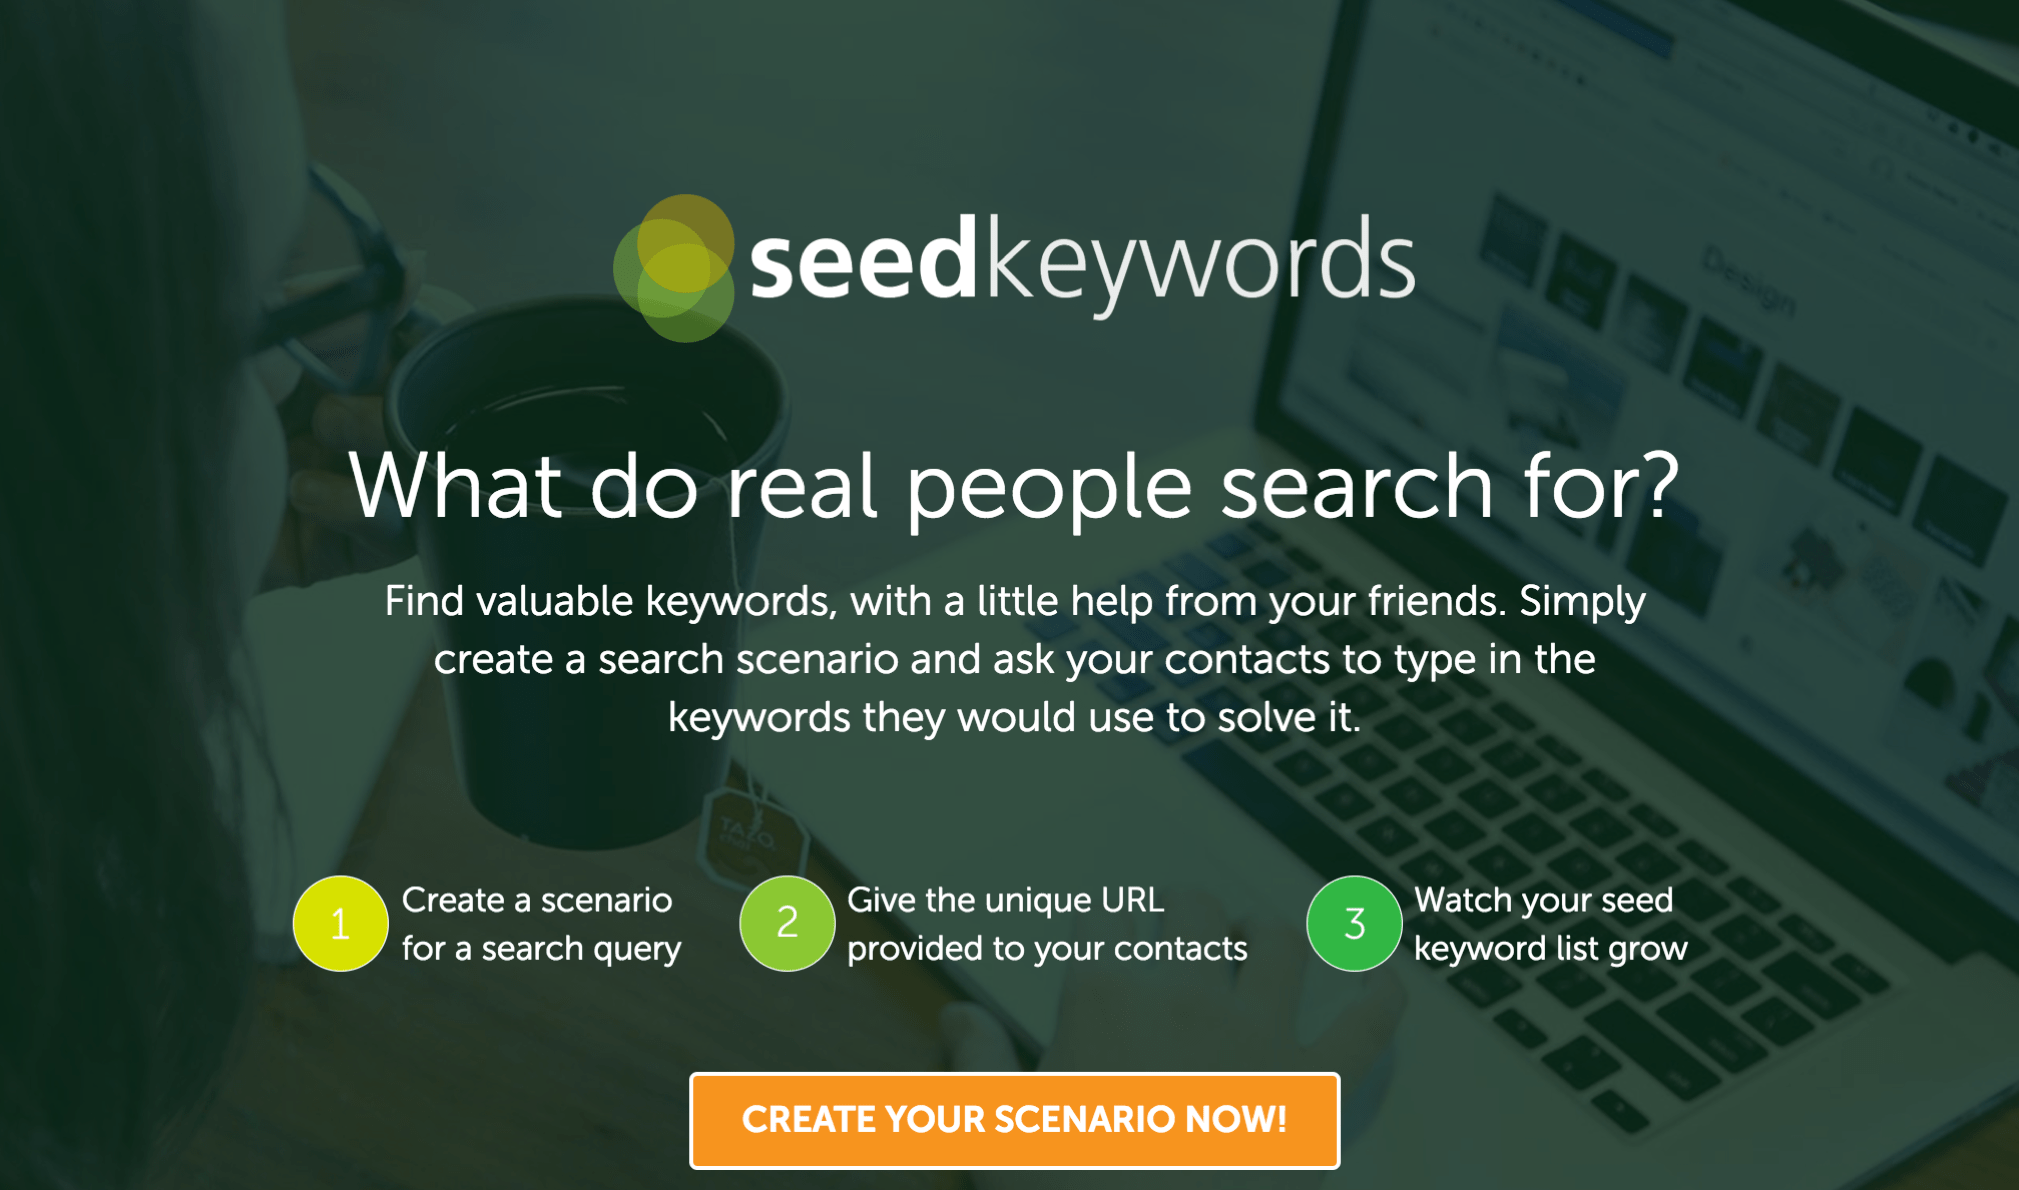 seed keywords screen shot